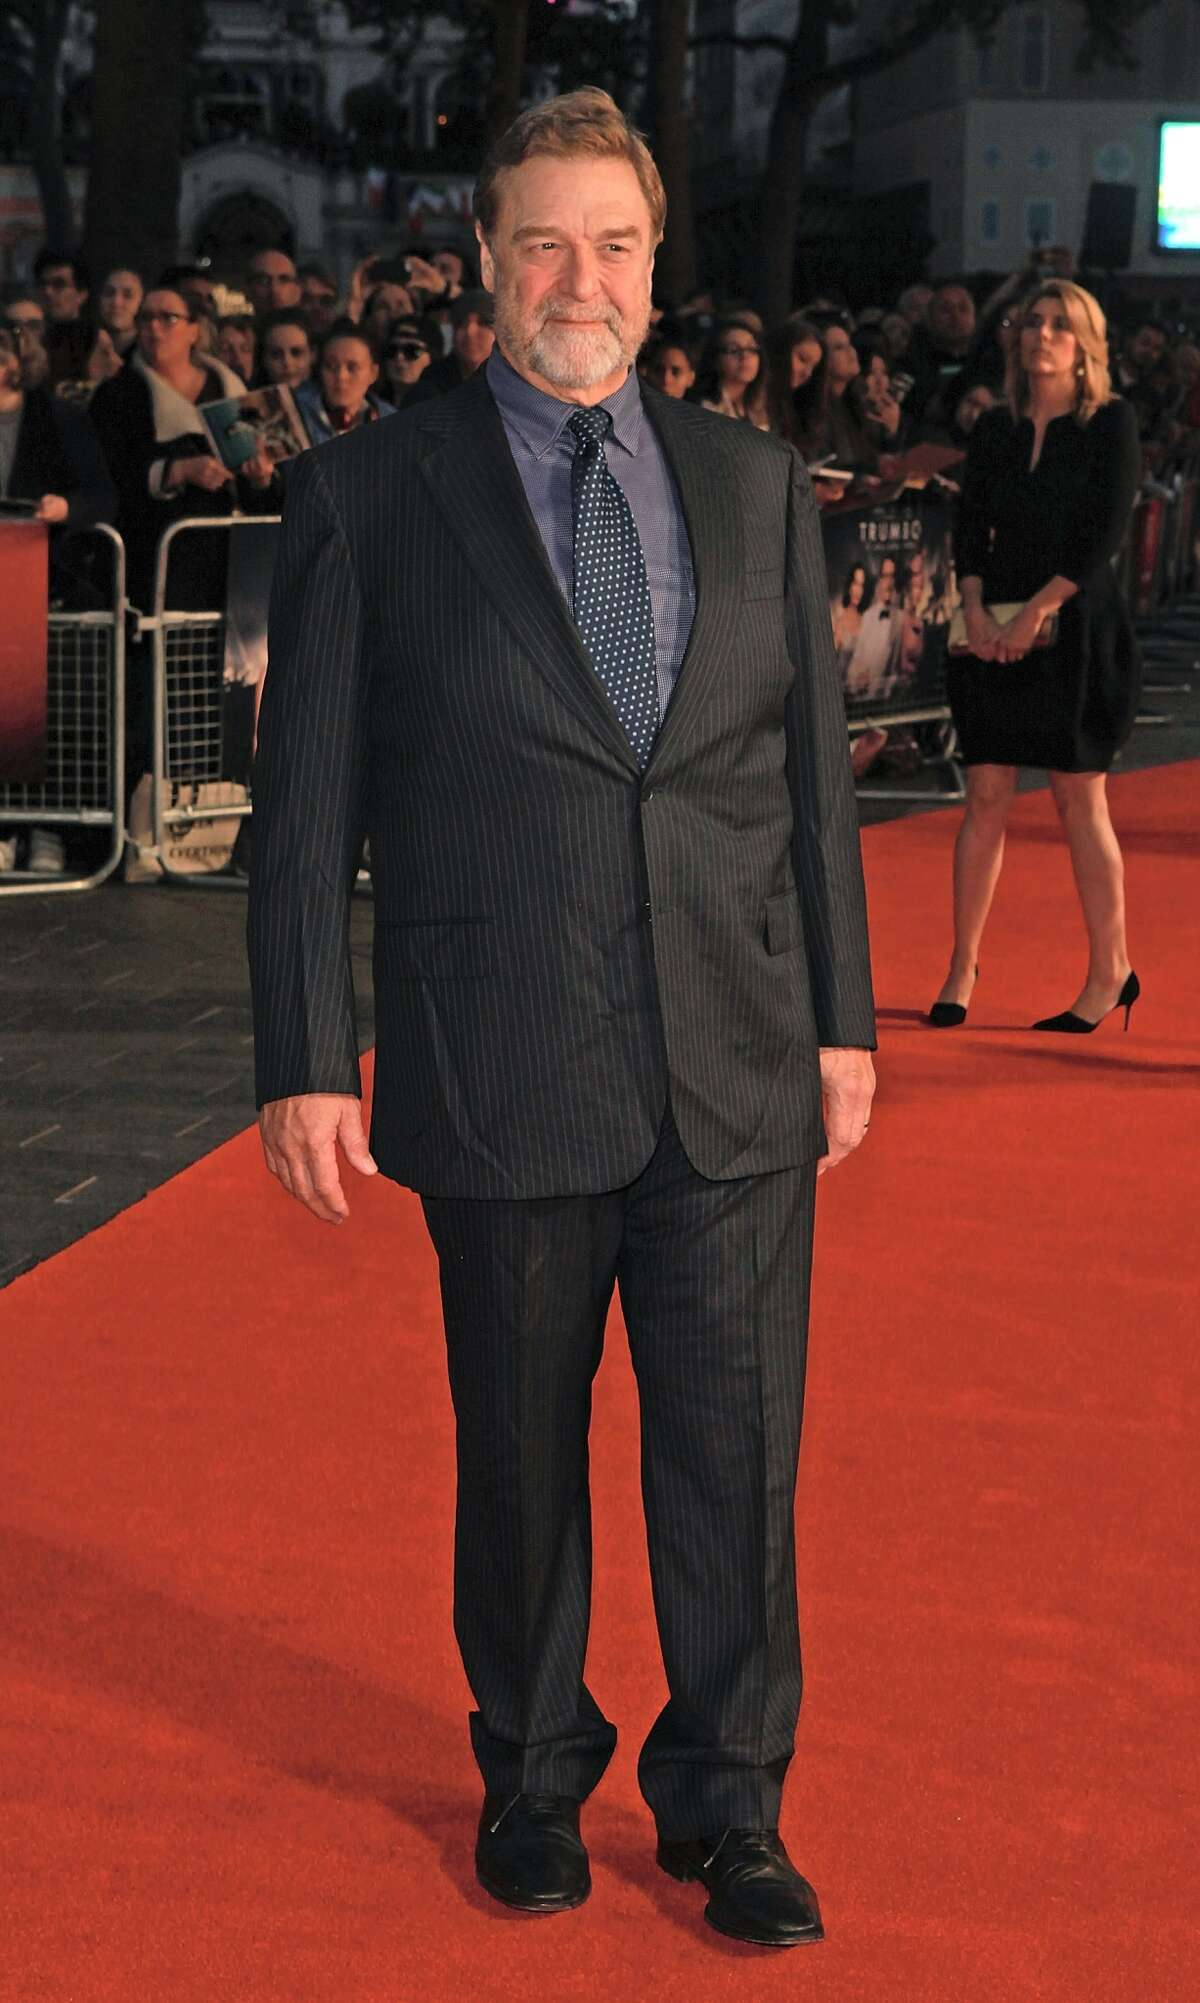 John Goodman attends the Accenture Gala Screening of 'Trumbo' during the BFI London Film Festival at Odeon Leicester Square on October 8, 2015 in London, England. (Photo by )